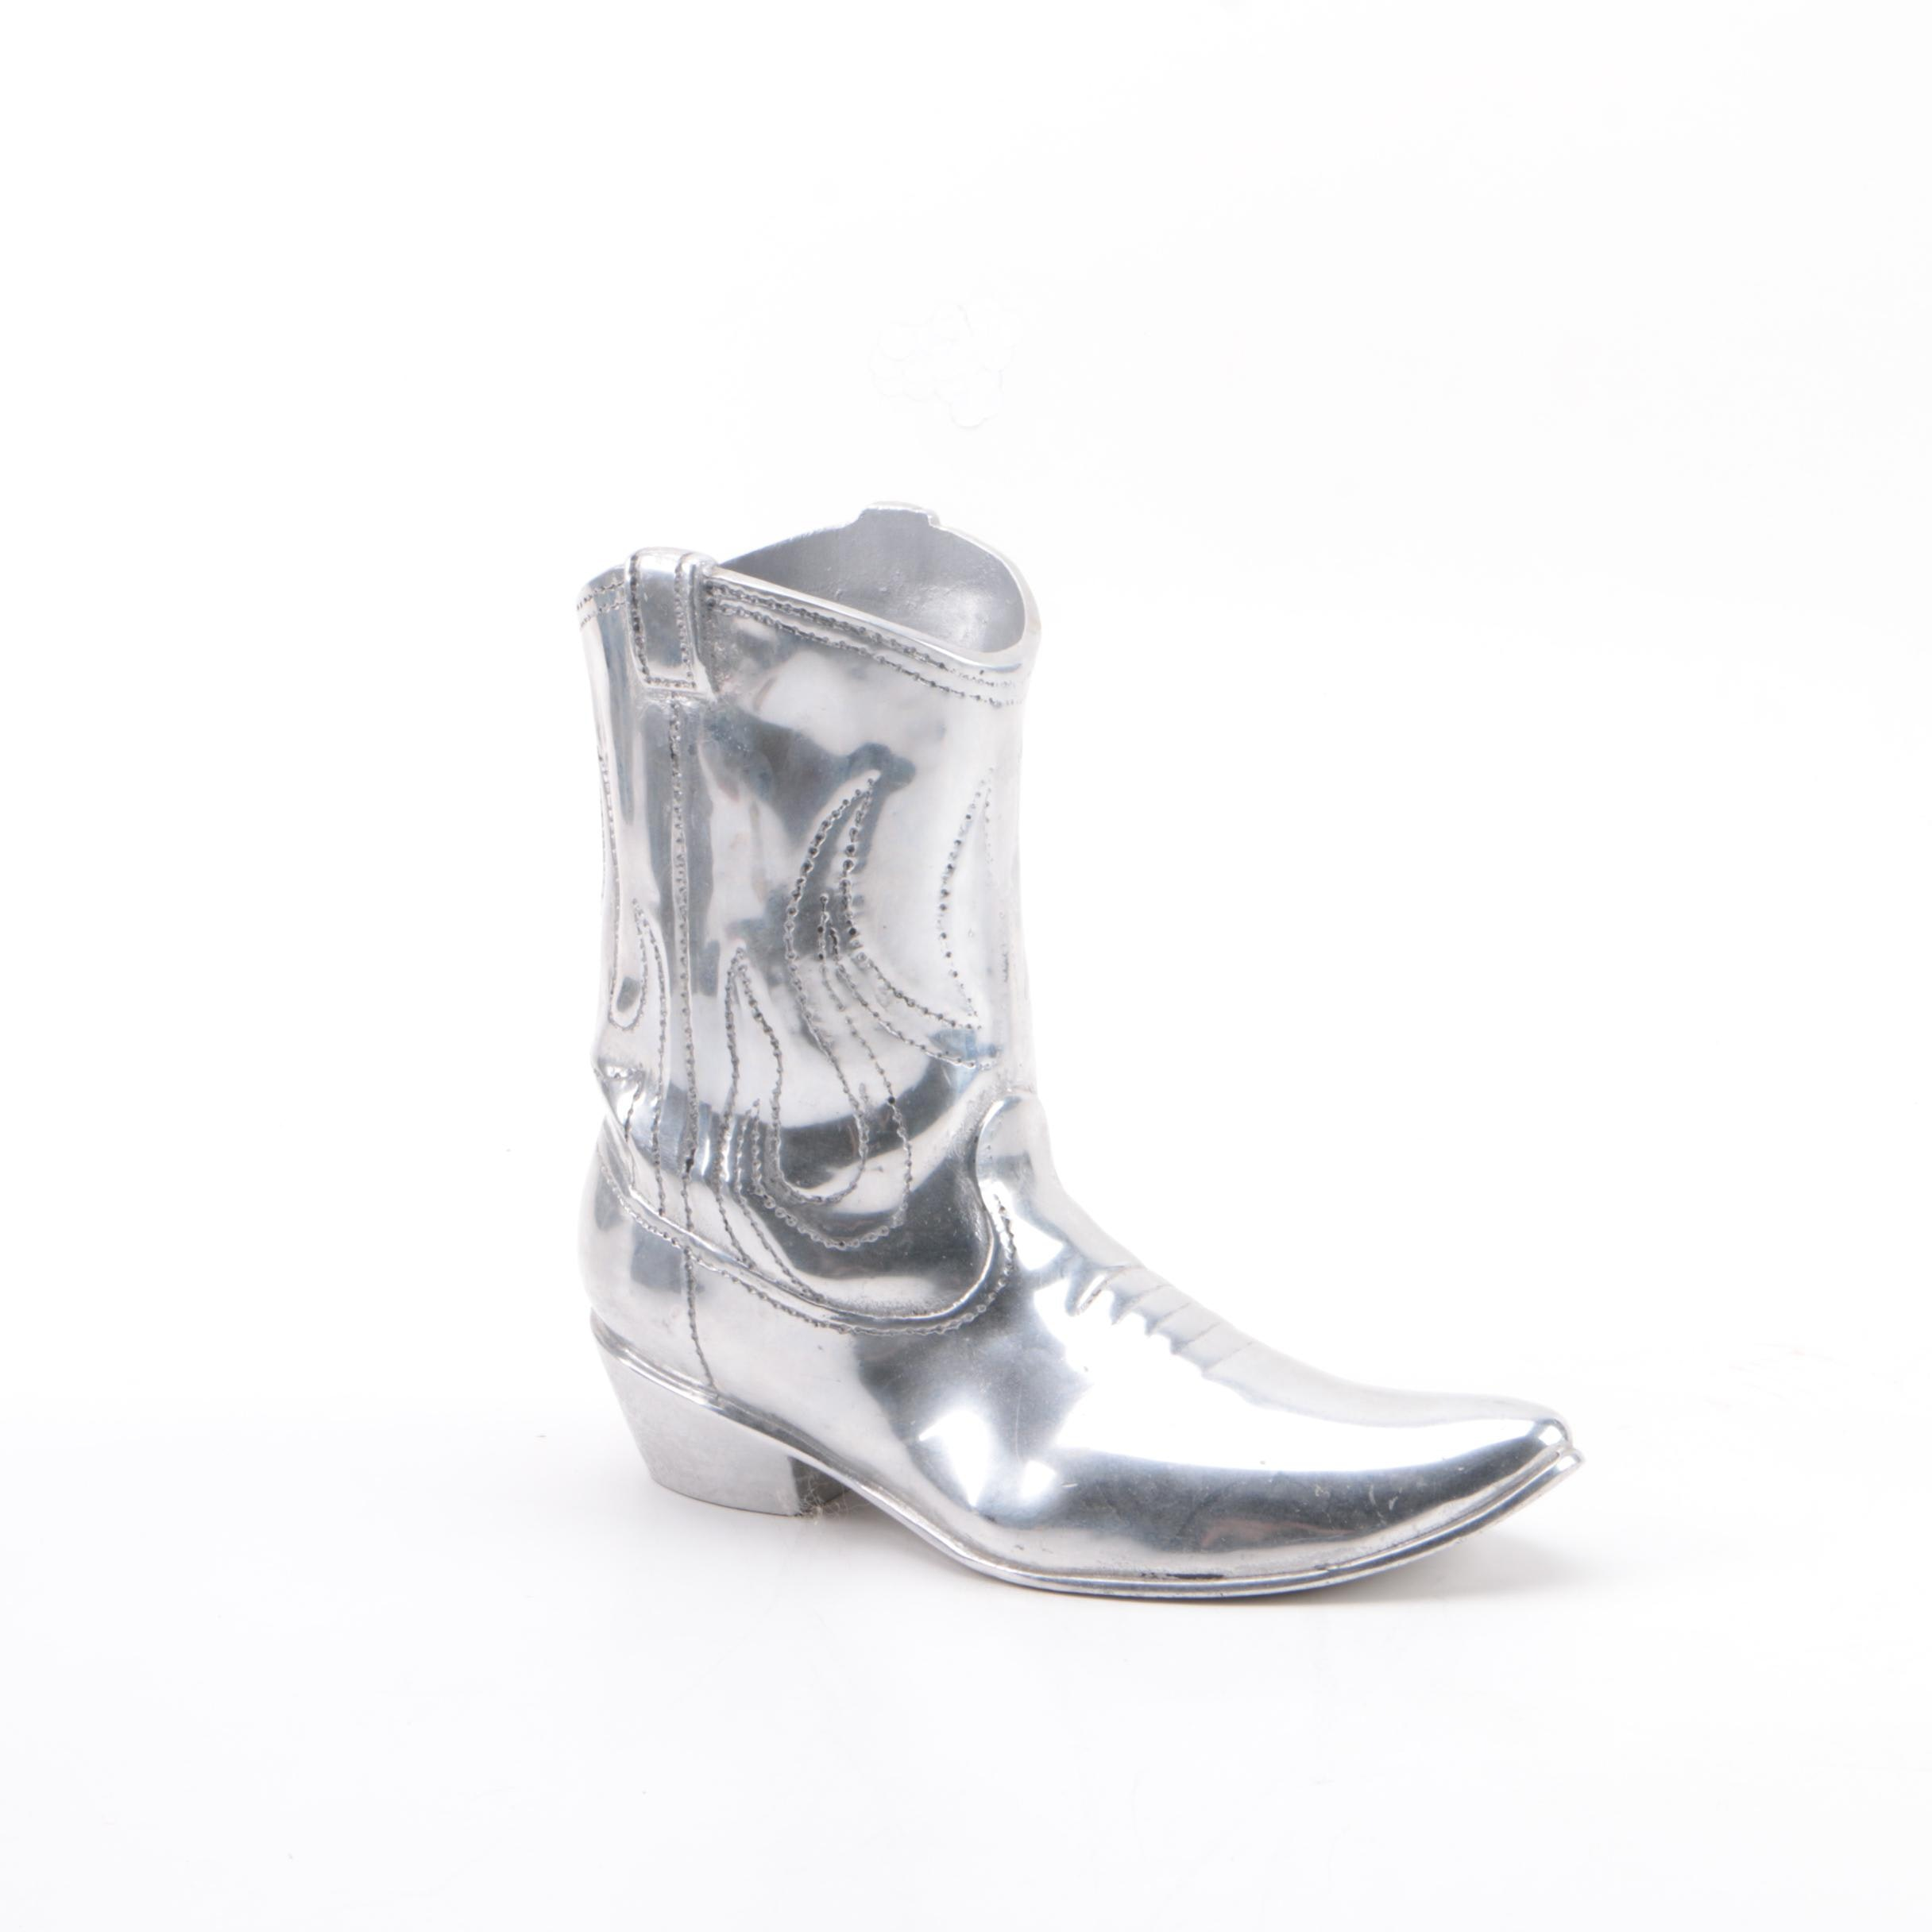 Cowboy Boot Shaped Silver Toned Metal Figurine by Mariposa